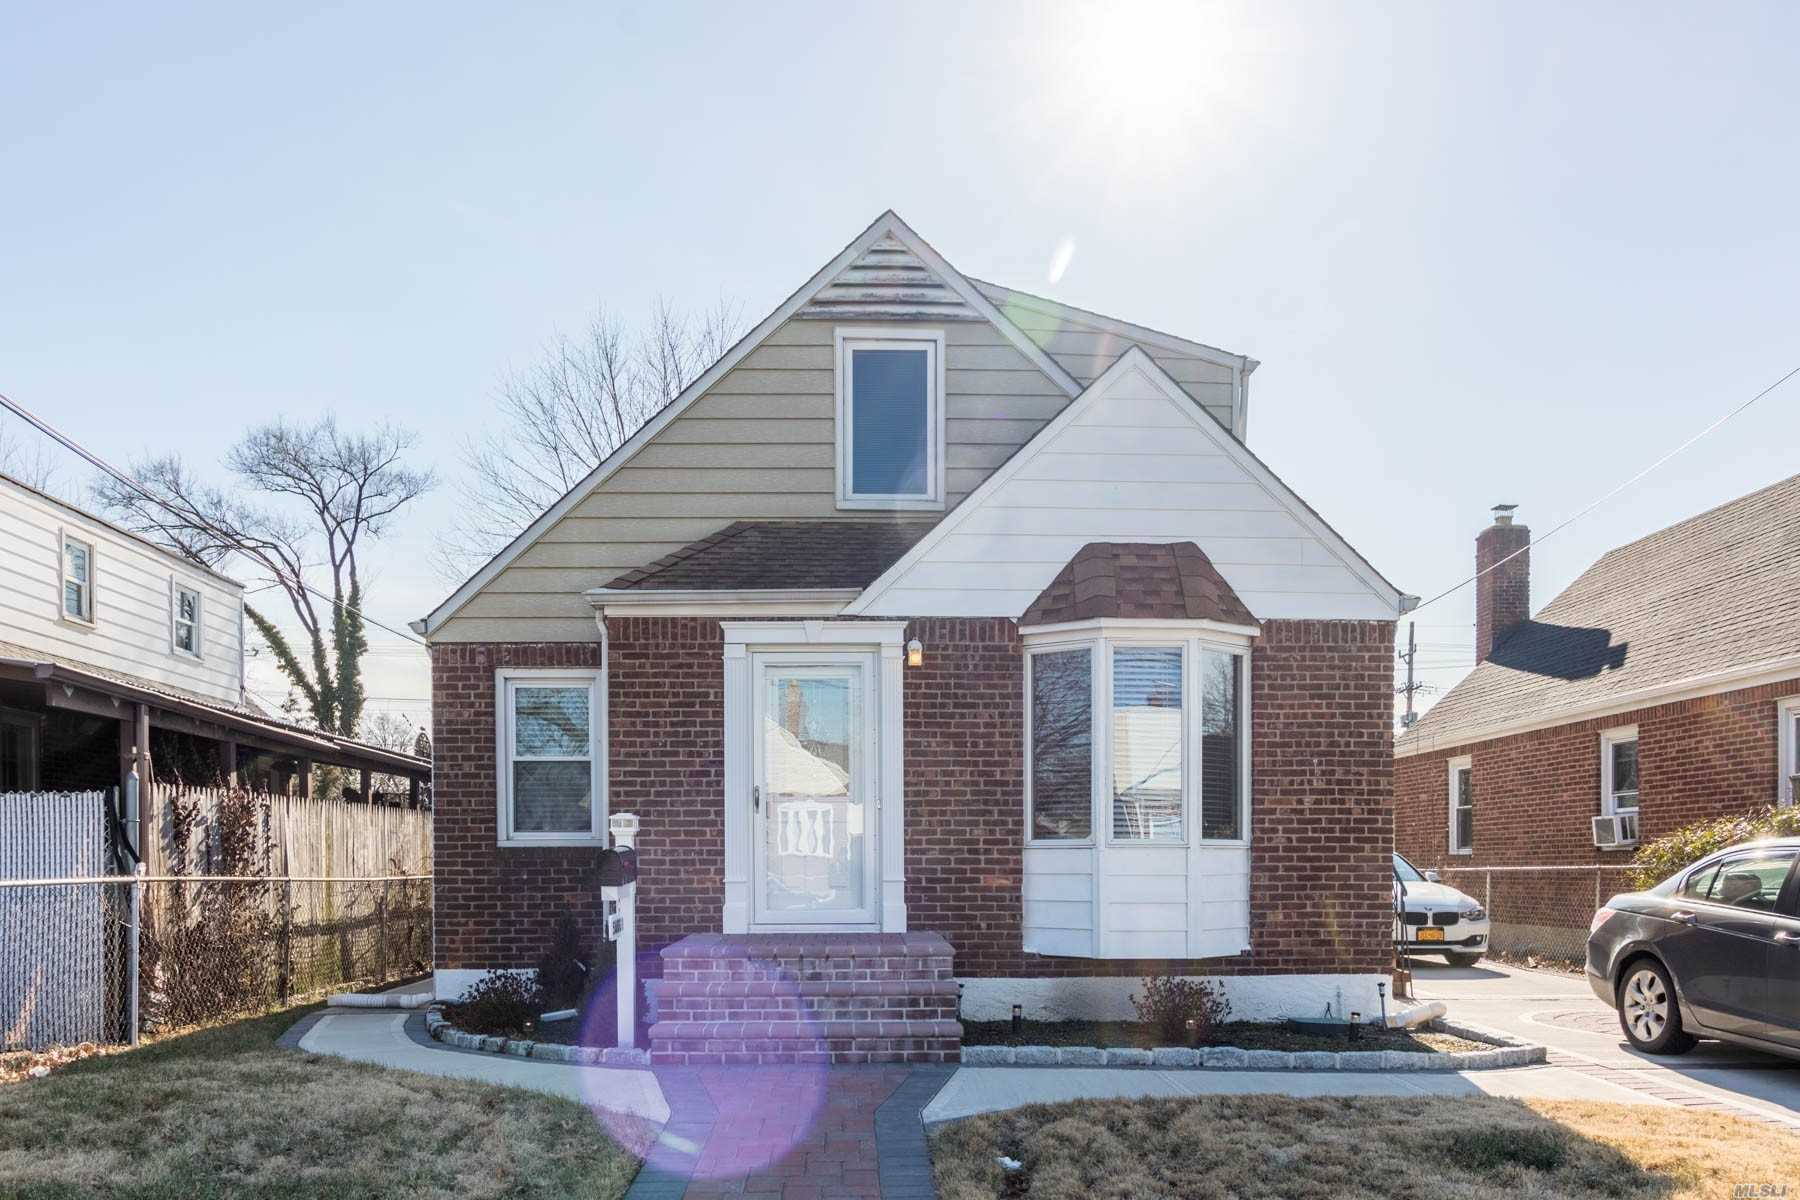 Beautiful Cape With 4 Br, Newly Renovated Kitchen, Bath Rooms, Living Room,  Very Large Lot Can Build. Nice Home Great Location. This Is A Lovely One Family Home